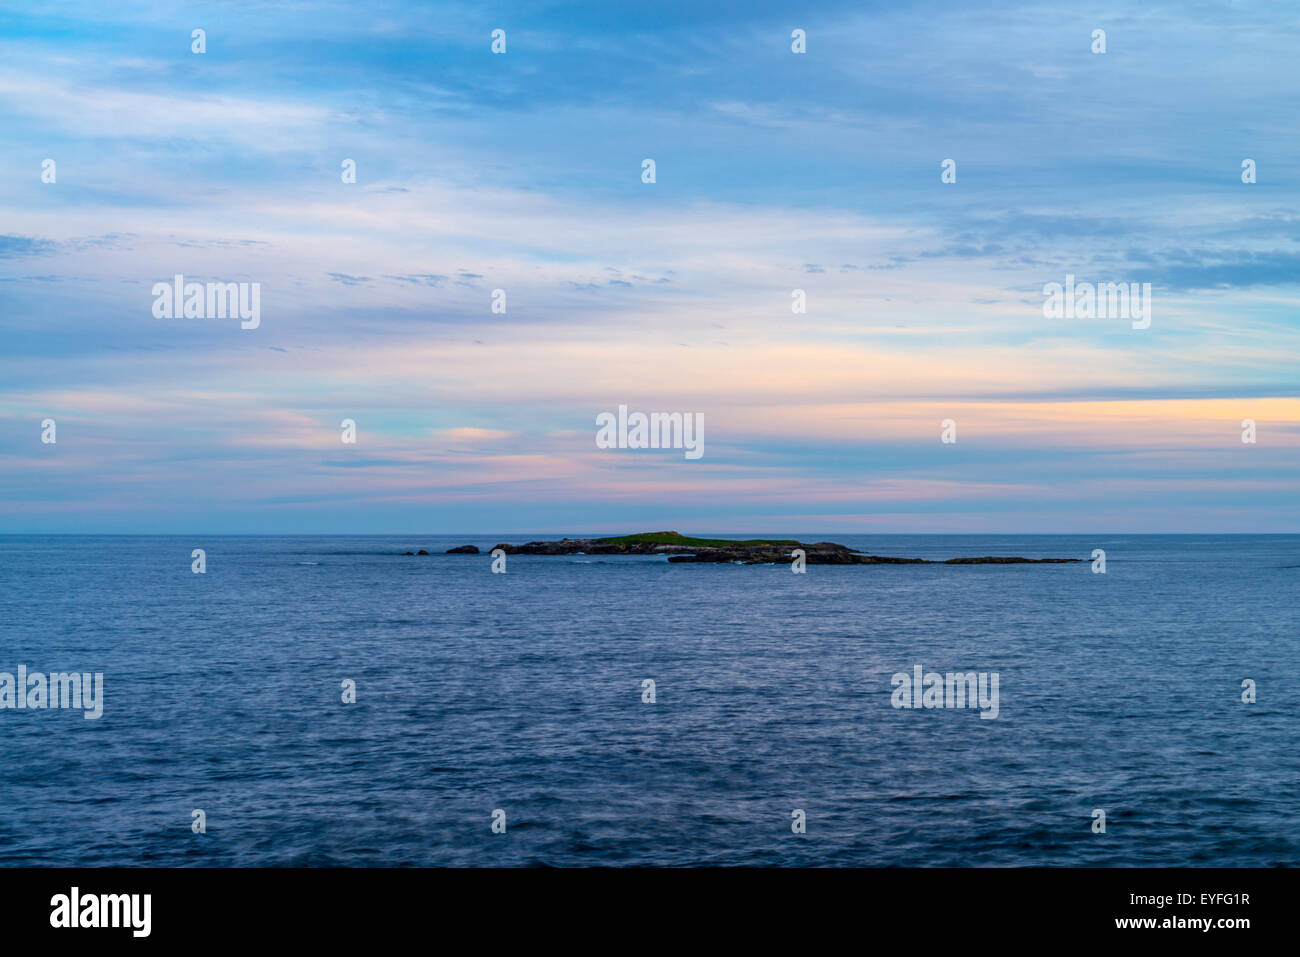 A small island in Atlantic Ocean viewed at sunset from Louisbourg lighthouse, Louisbourg, Nova Scotia, Canada - Stock Image